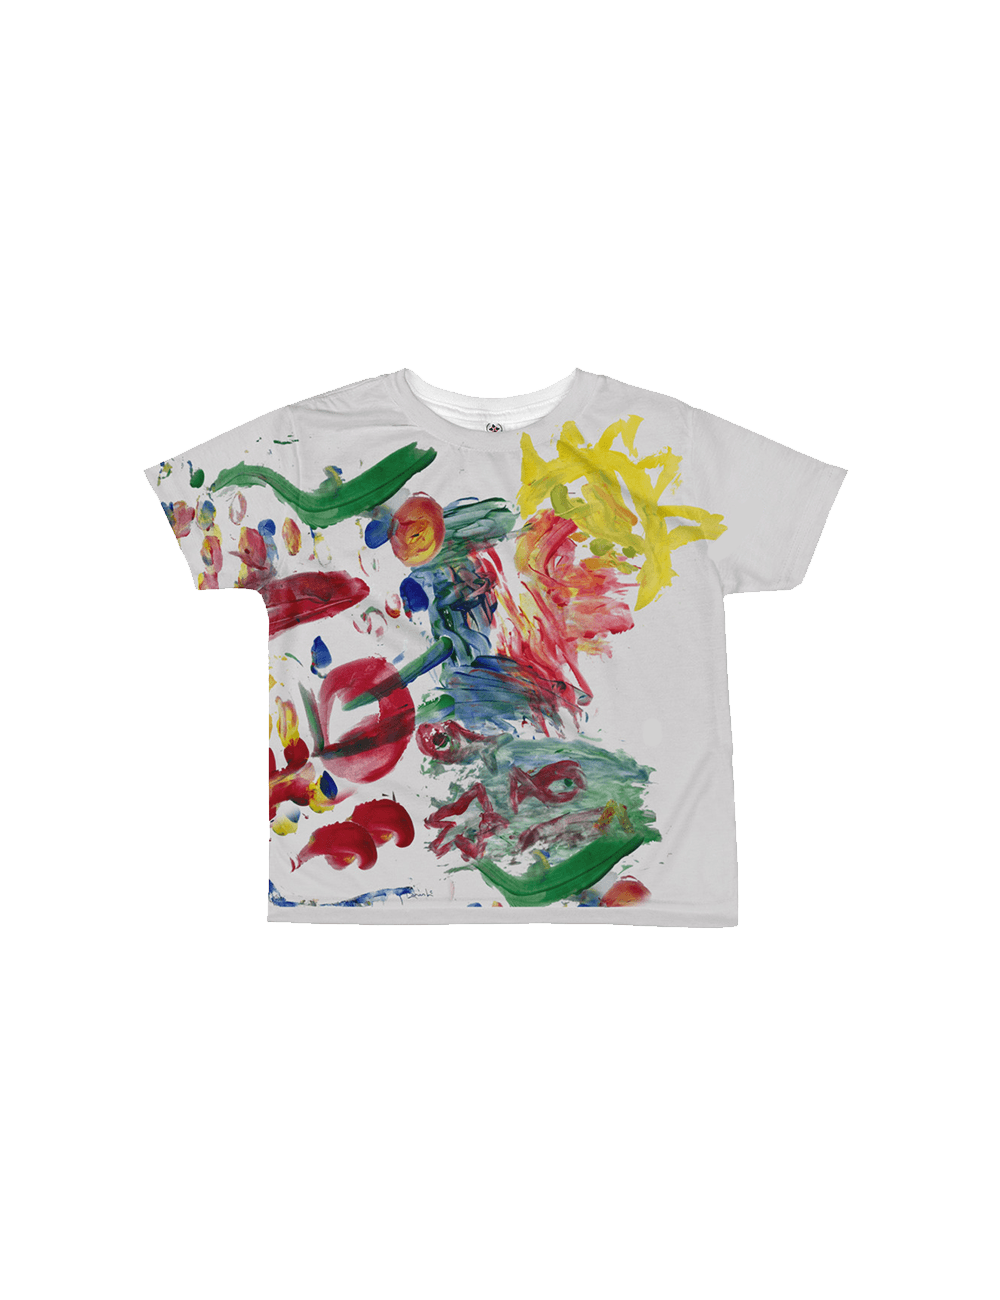 Masterpiece Kids Tee